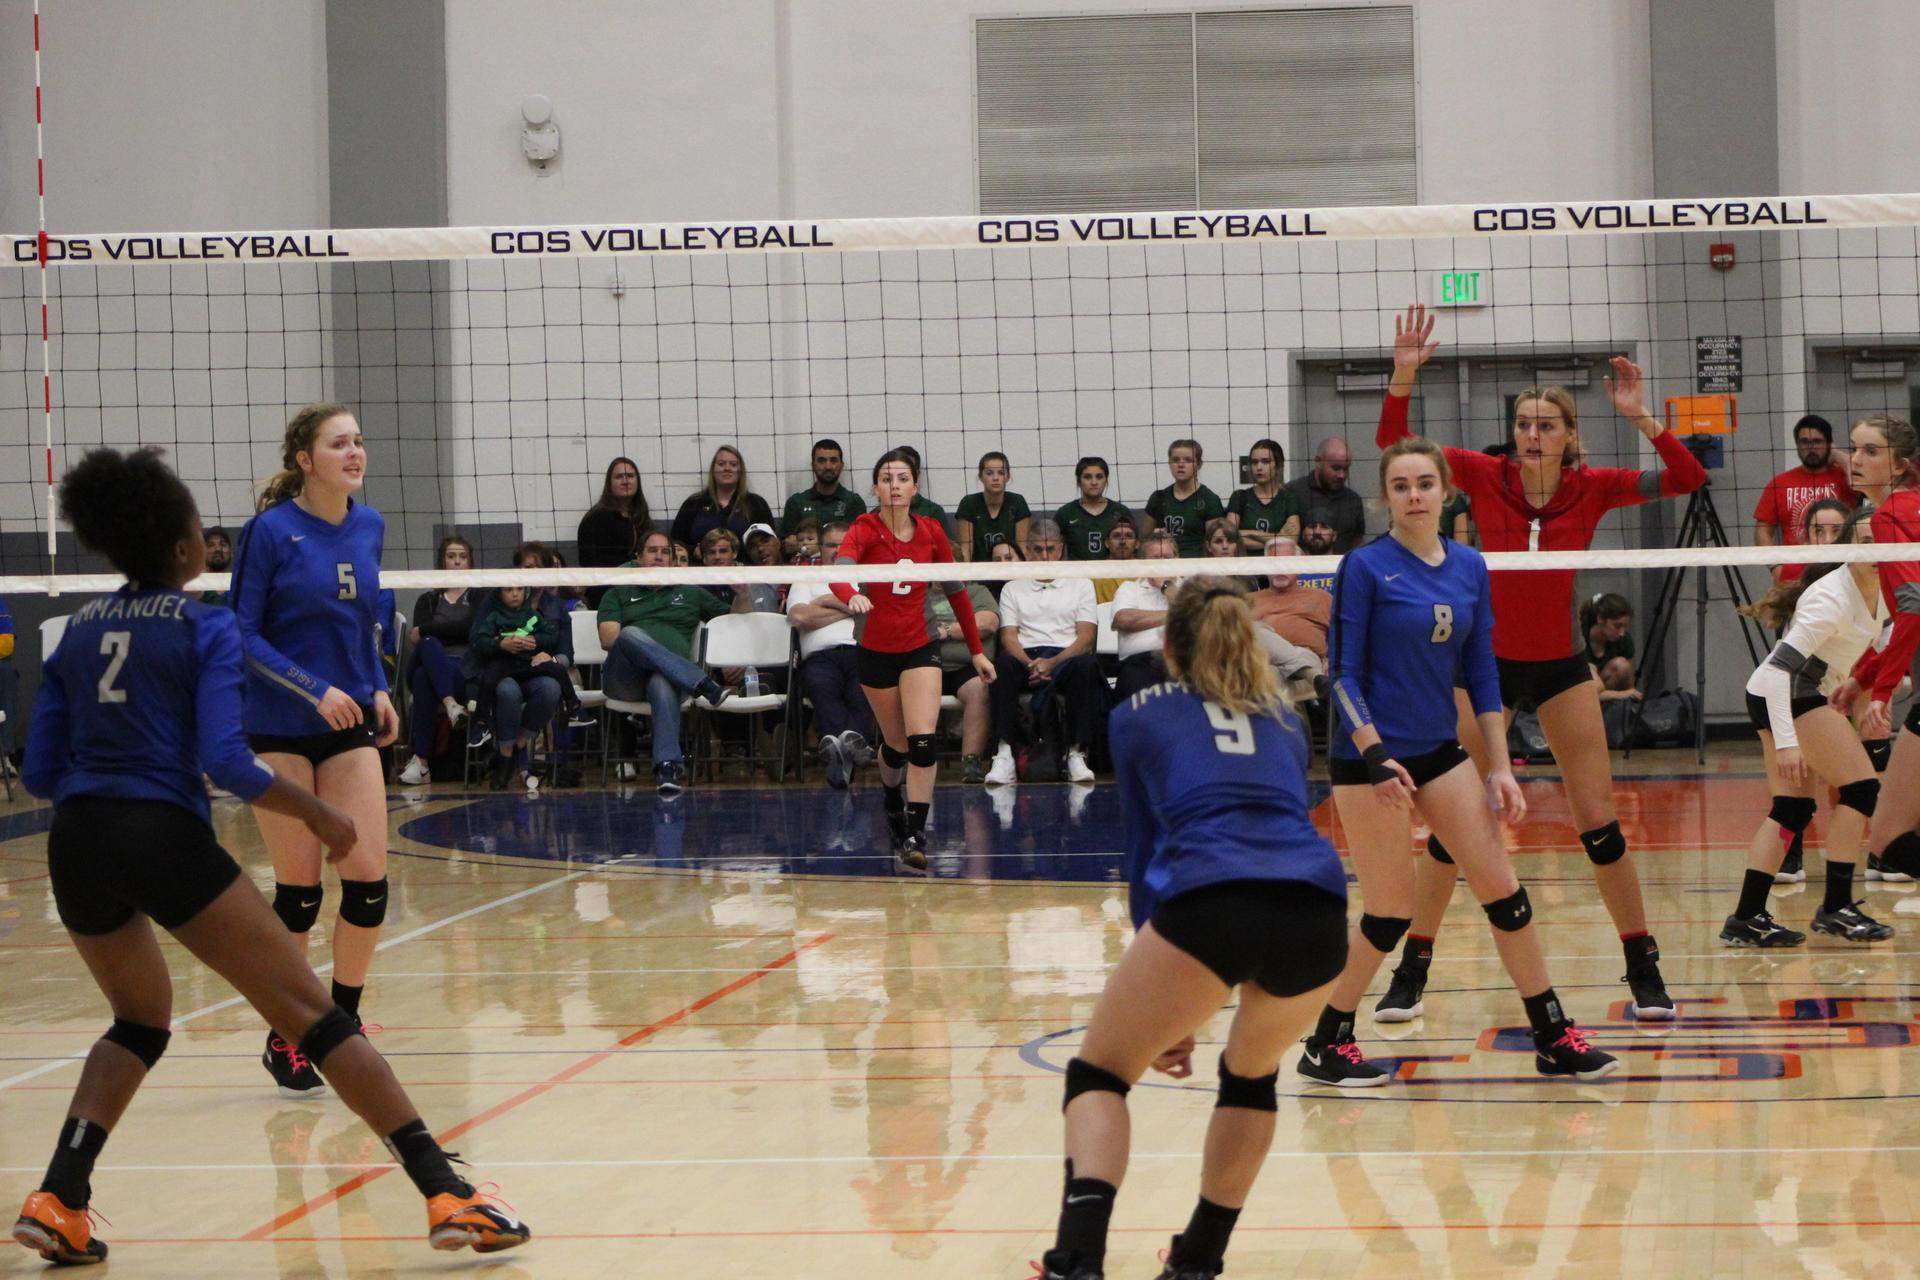 Girls playing volleyball against Immanuel